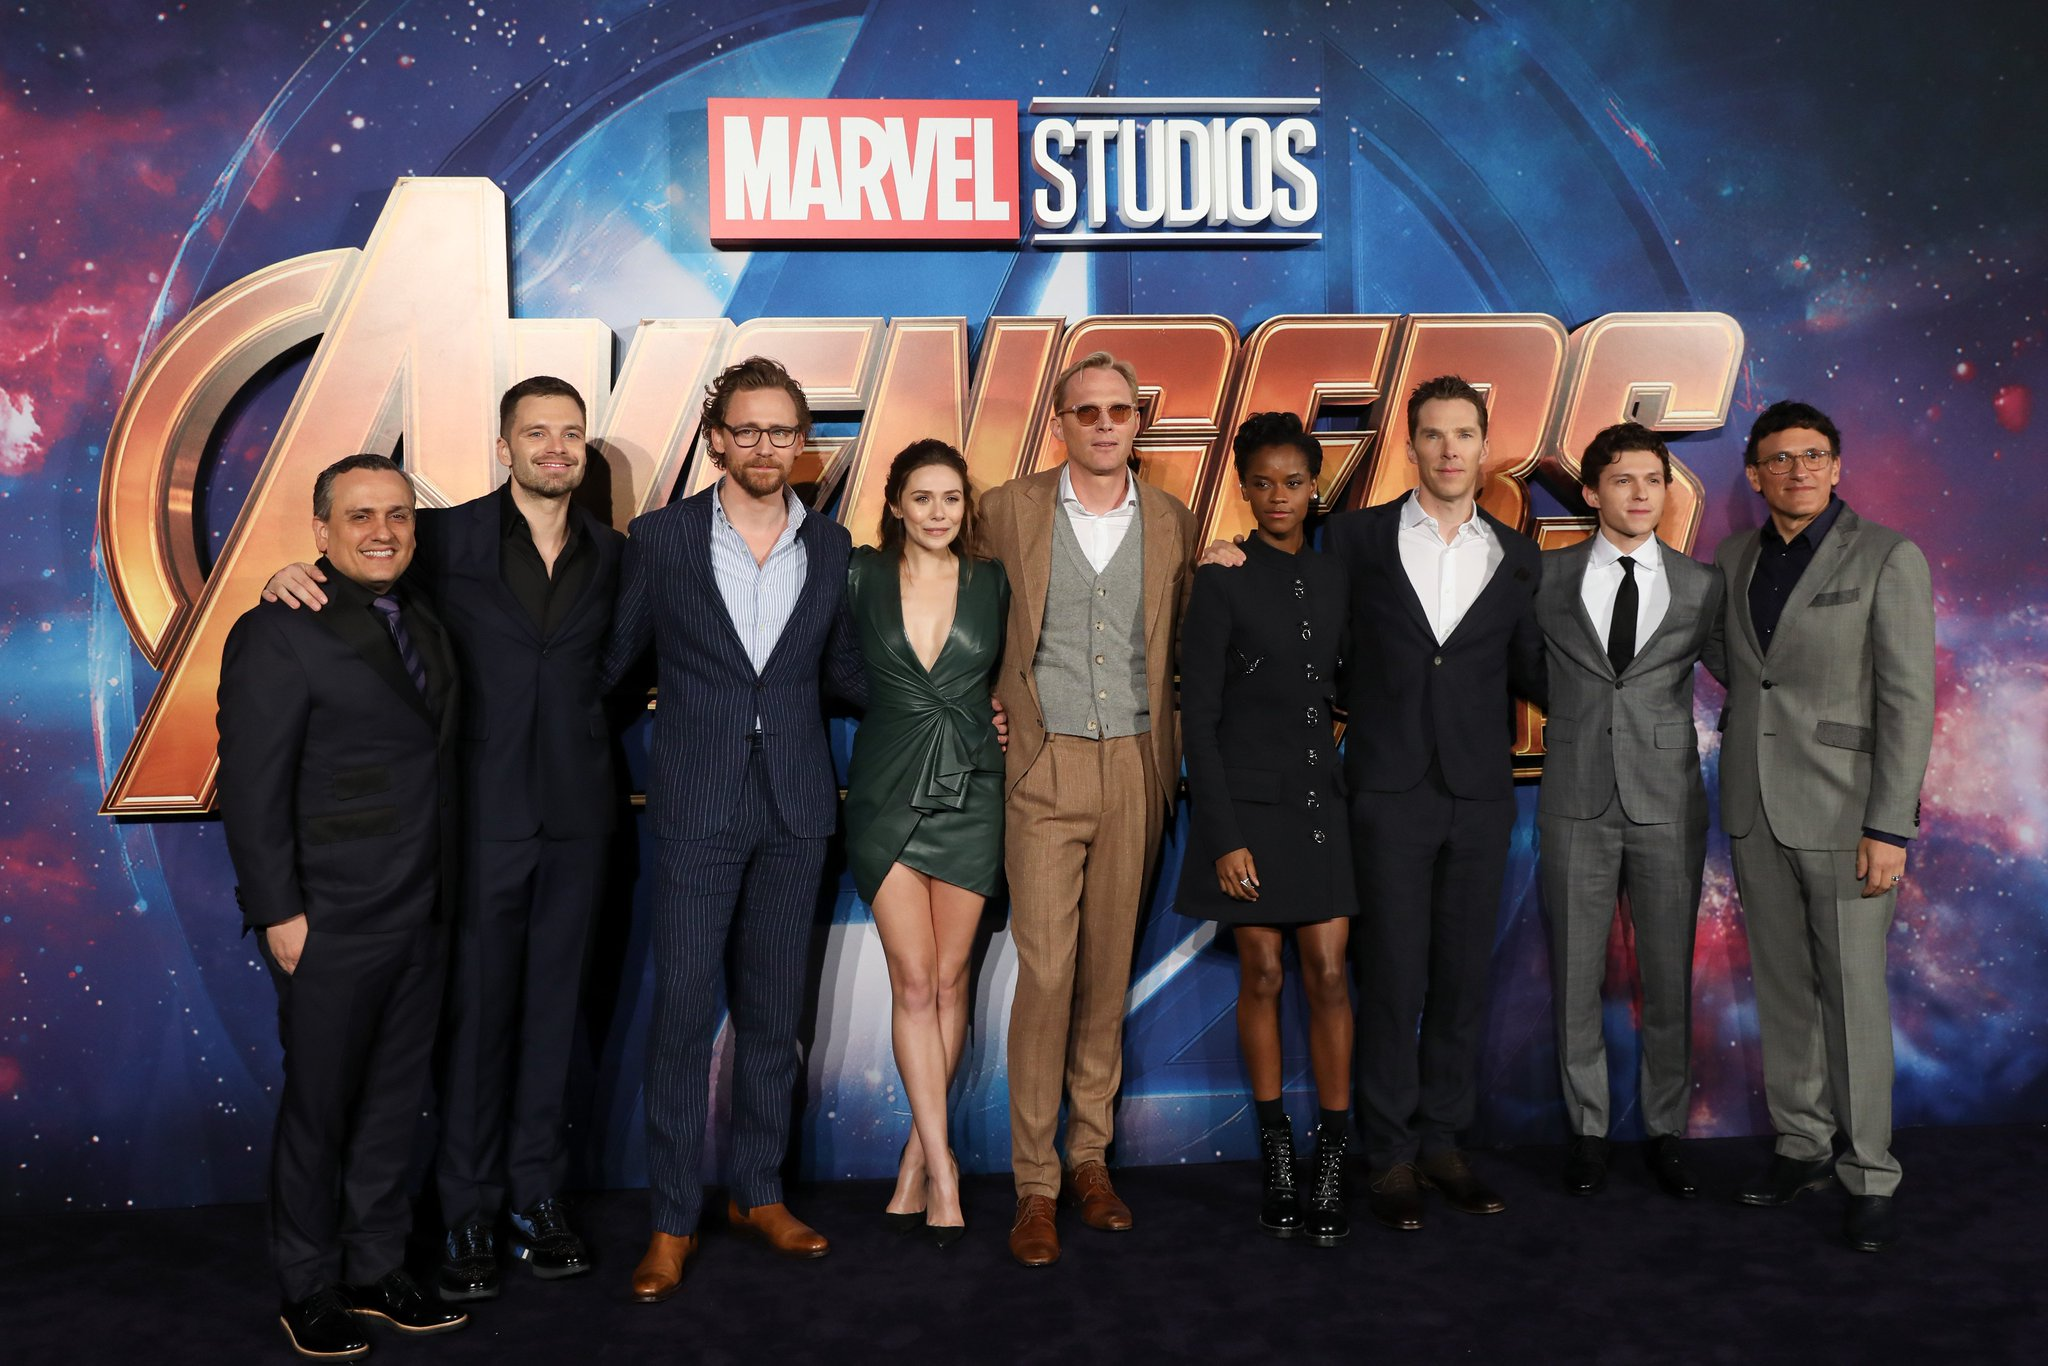 See the photos from the Marvel Studios' @Avengers: #InfinityWar red carpet fan event in London! (1/3) https://t.co/8Nk8di3SyB